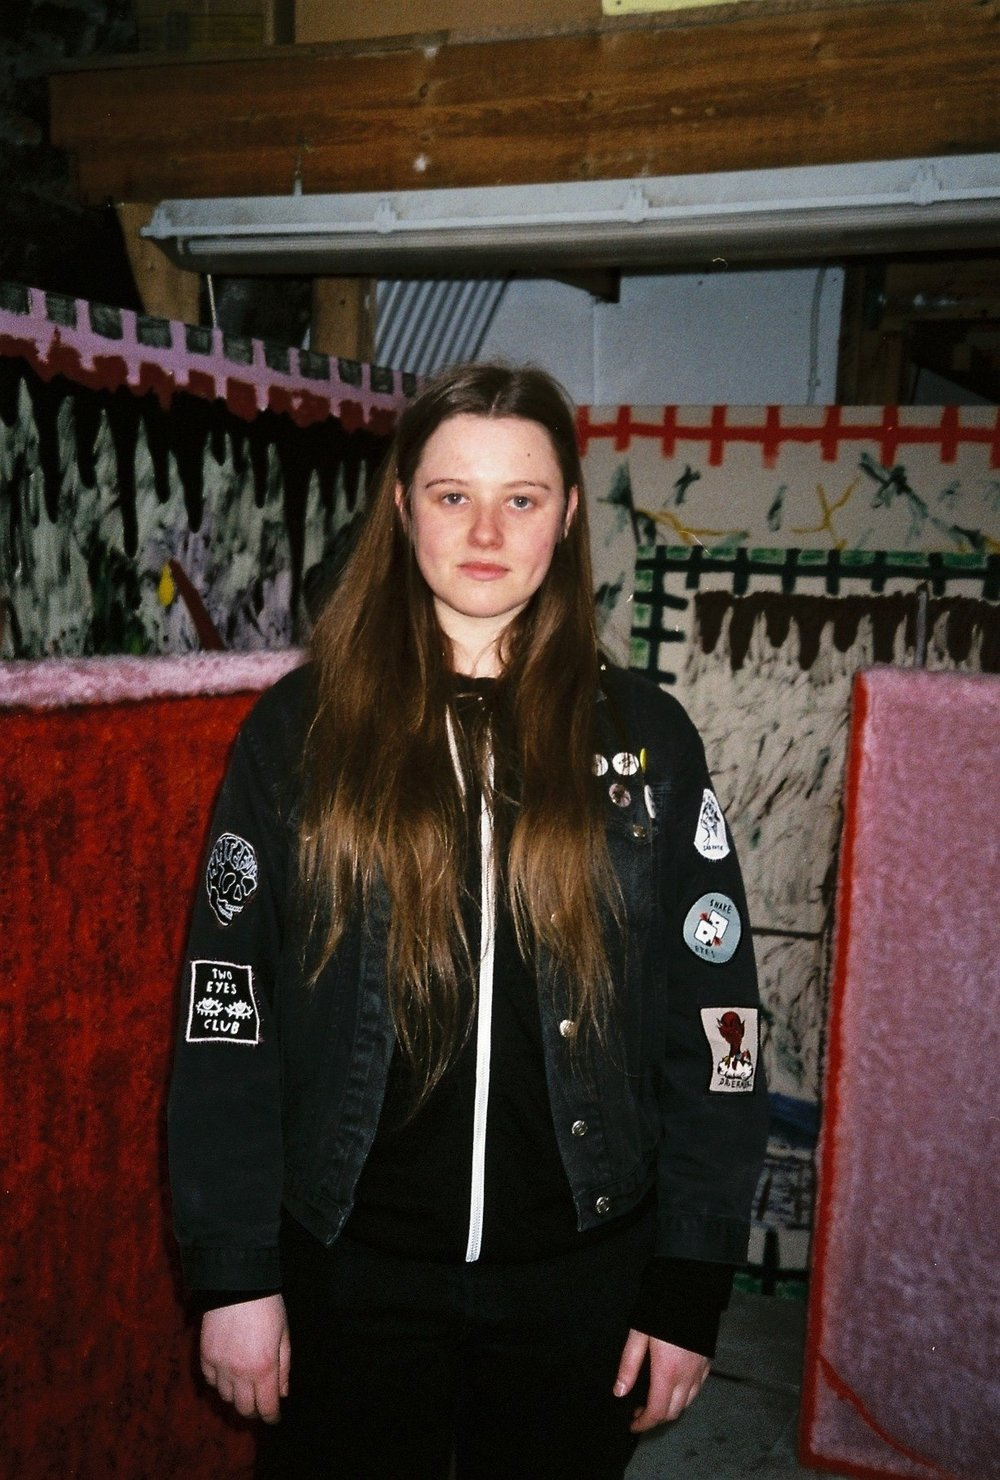 daisy parris, studio visit by dateagleart. photography by delilah olson, copyright dateagleart